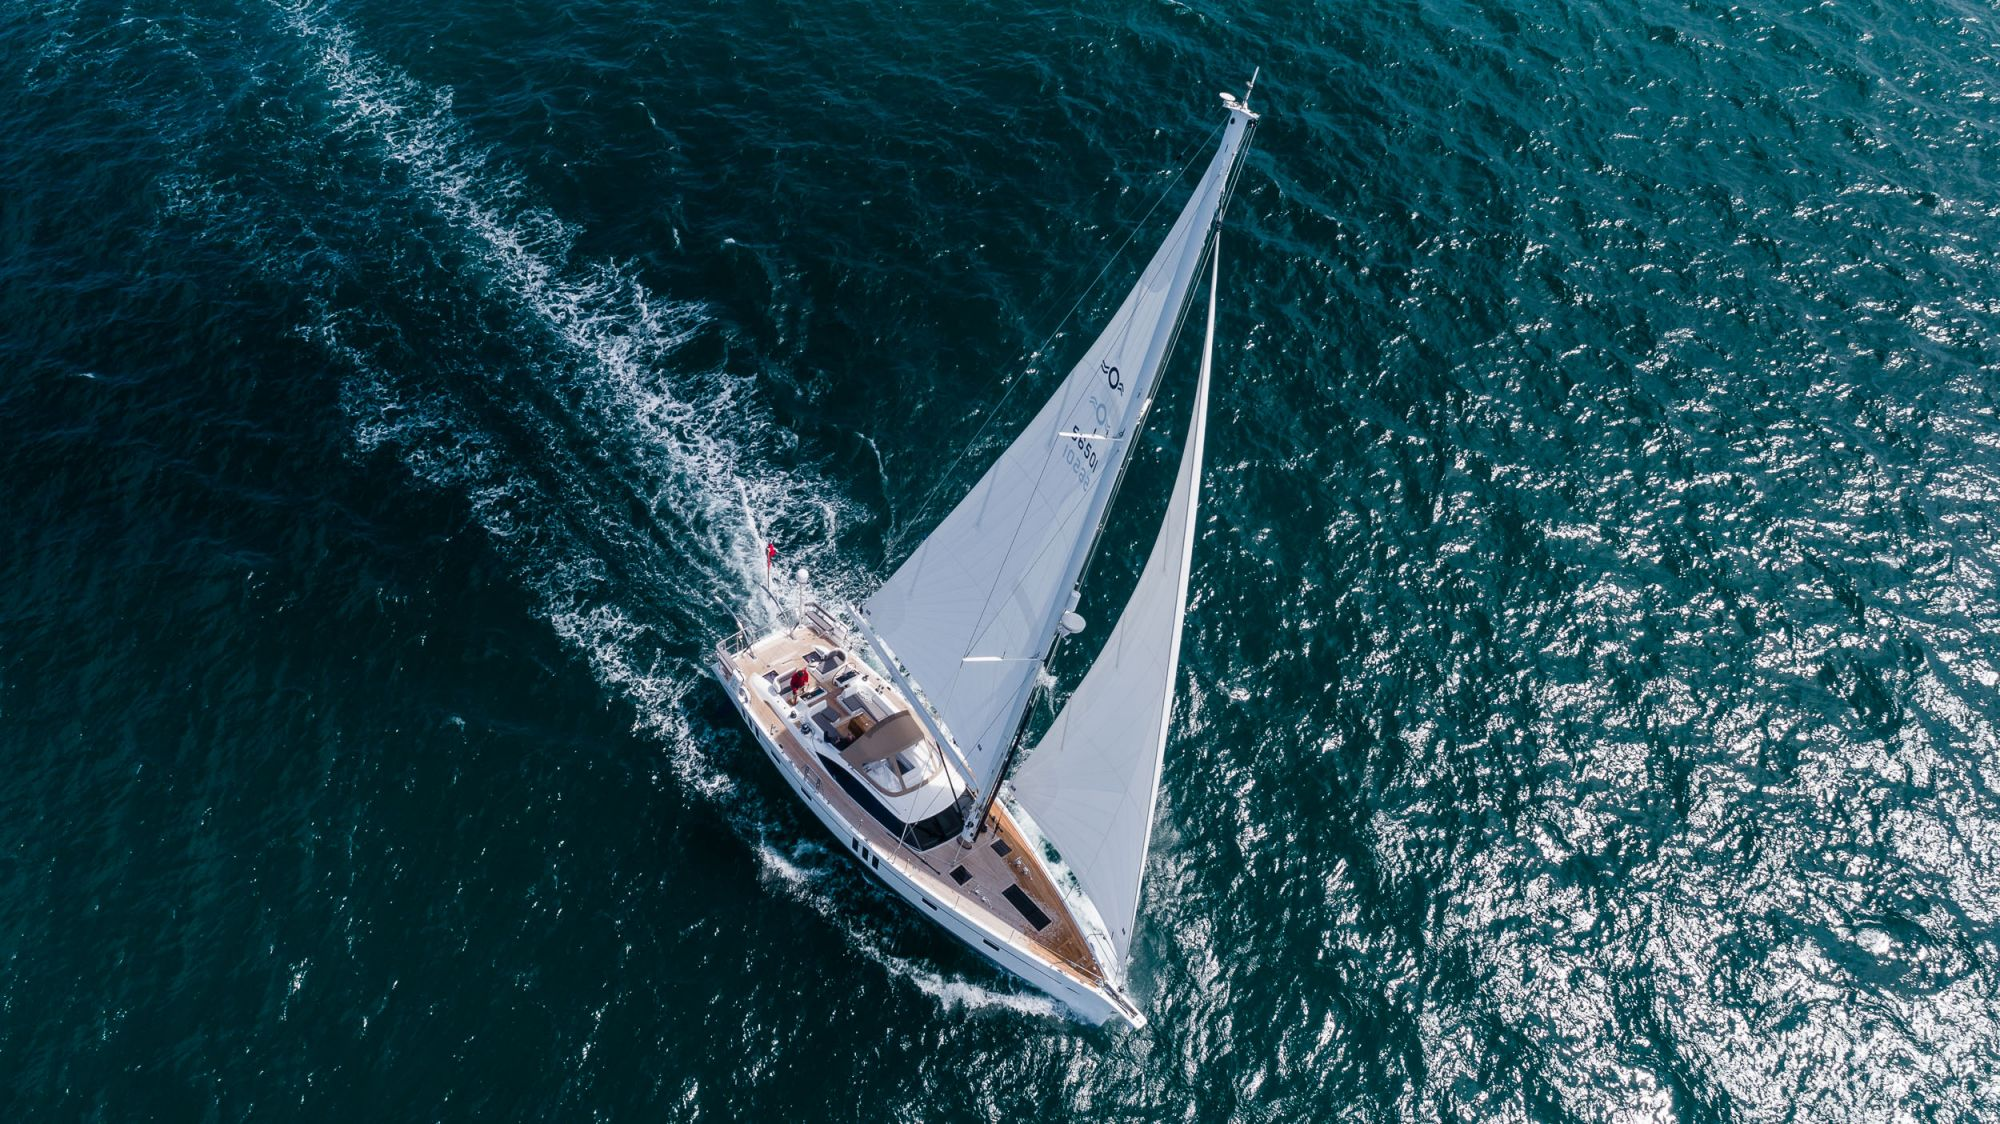 Oyster 565 - The Oyster 565 is our new, award-winning blue water sailing yacht, part of our sixth Generation (G6) fleet of Oyster sailing yachts. Photo: Brian Carlin ©